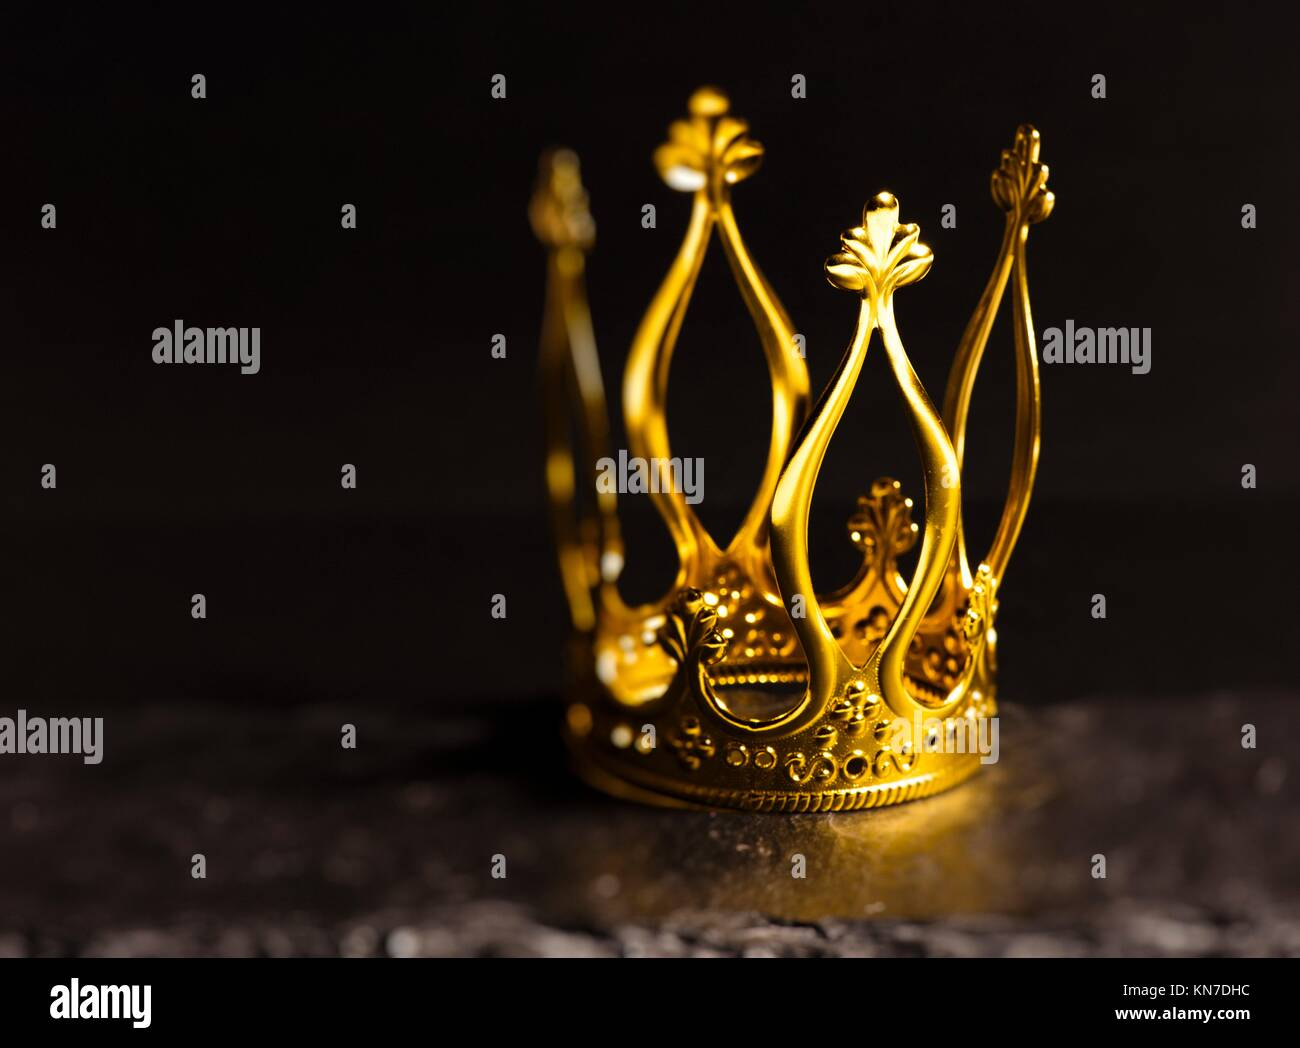 Crown Backgrounds High Resolution Stock Photography And Images Alamy